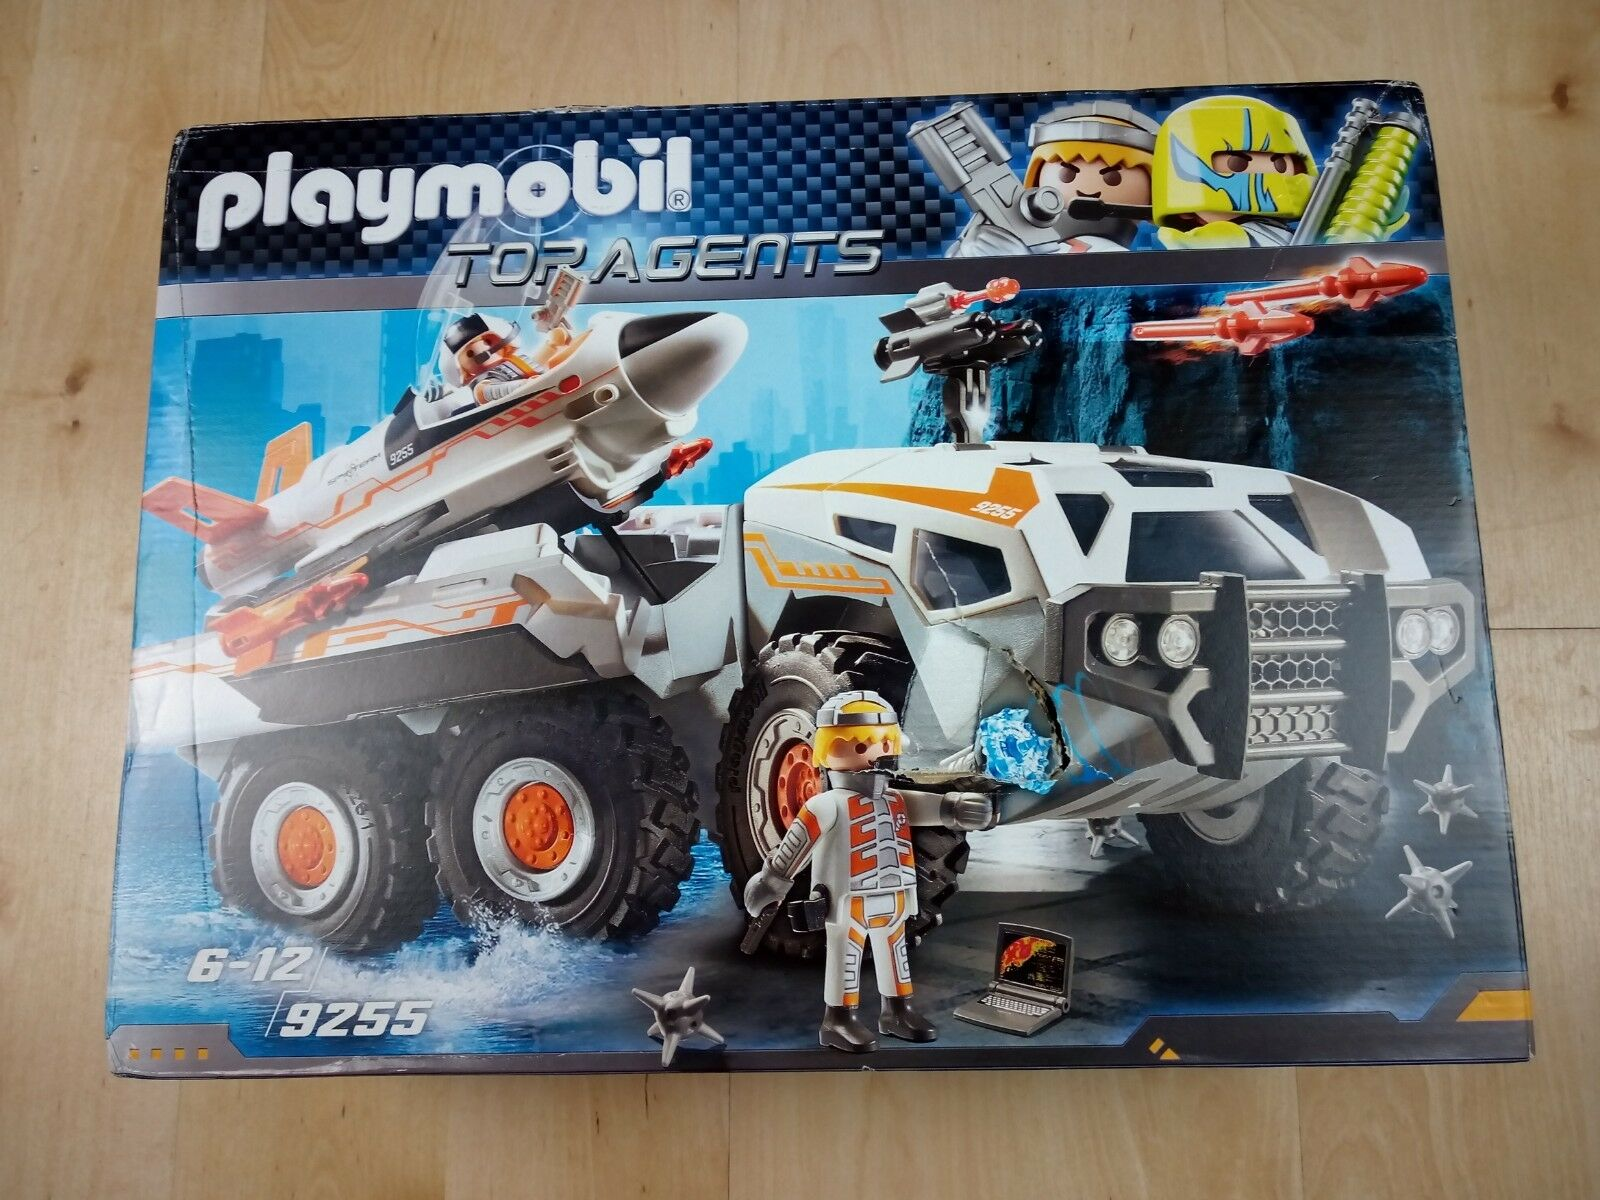 Playmobil 9255 Top Agents SpyTeam Battle Truck with Spy Jet Launch Pad Toy Set